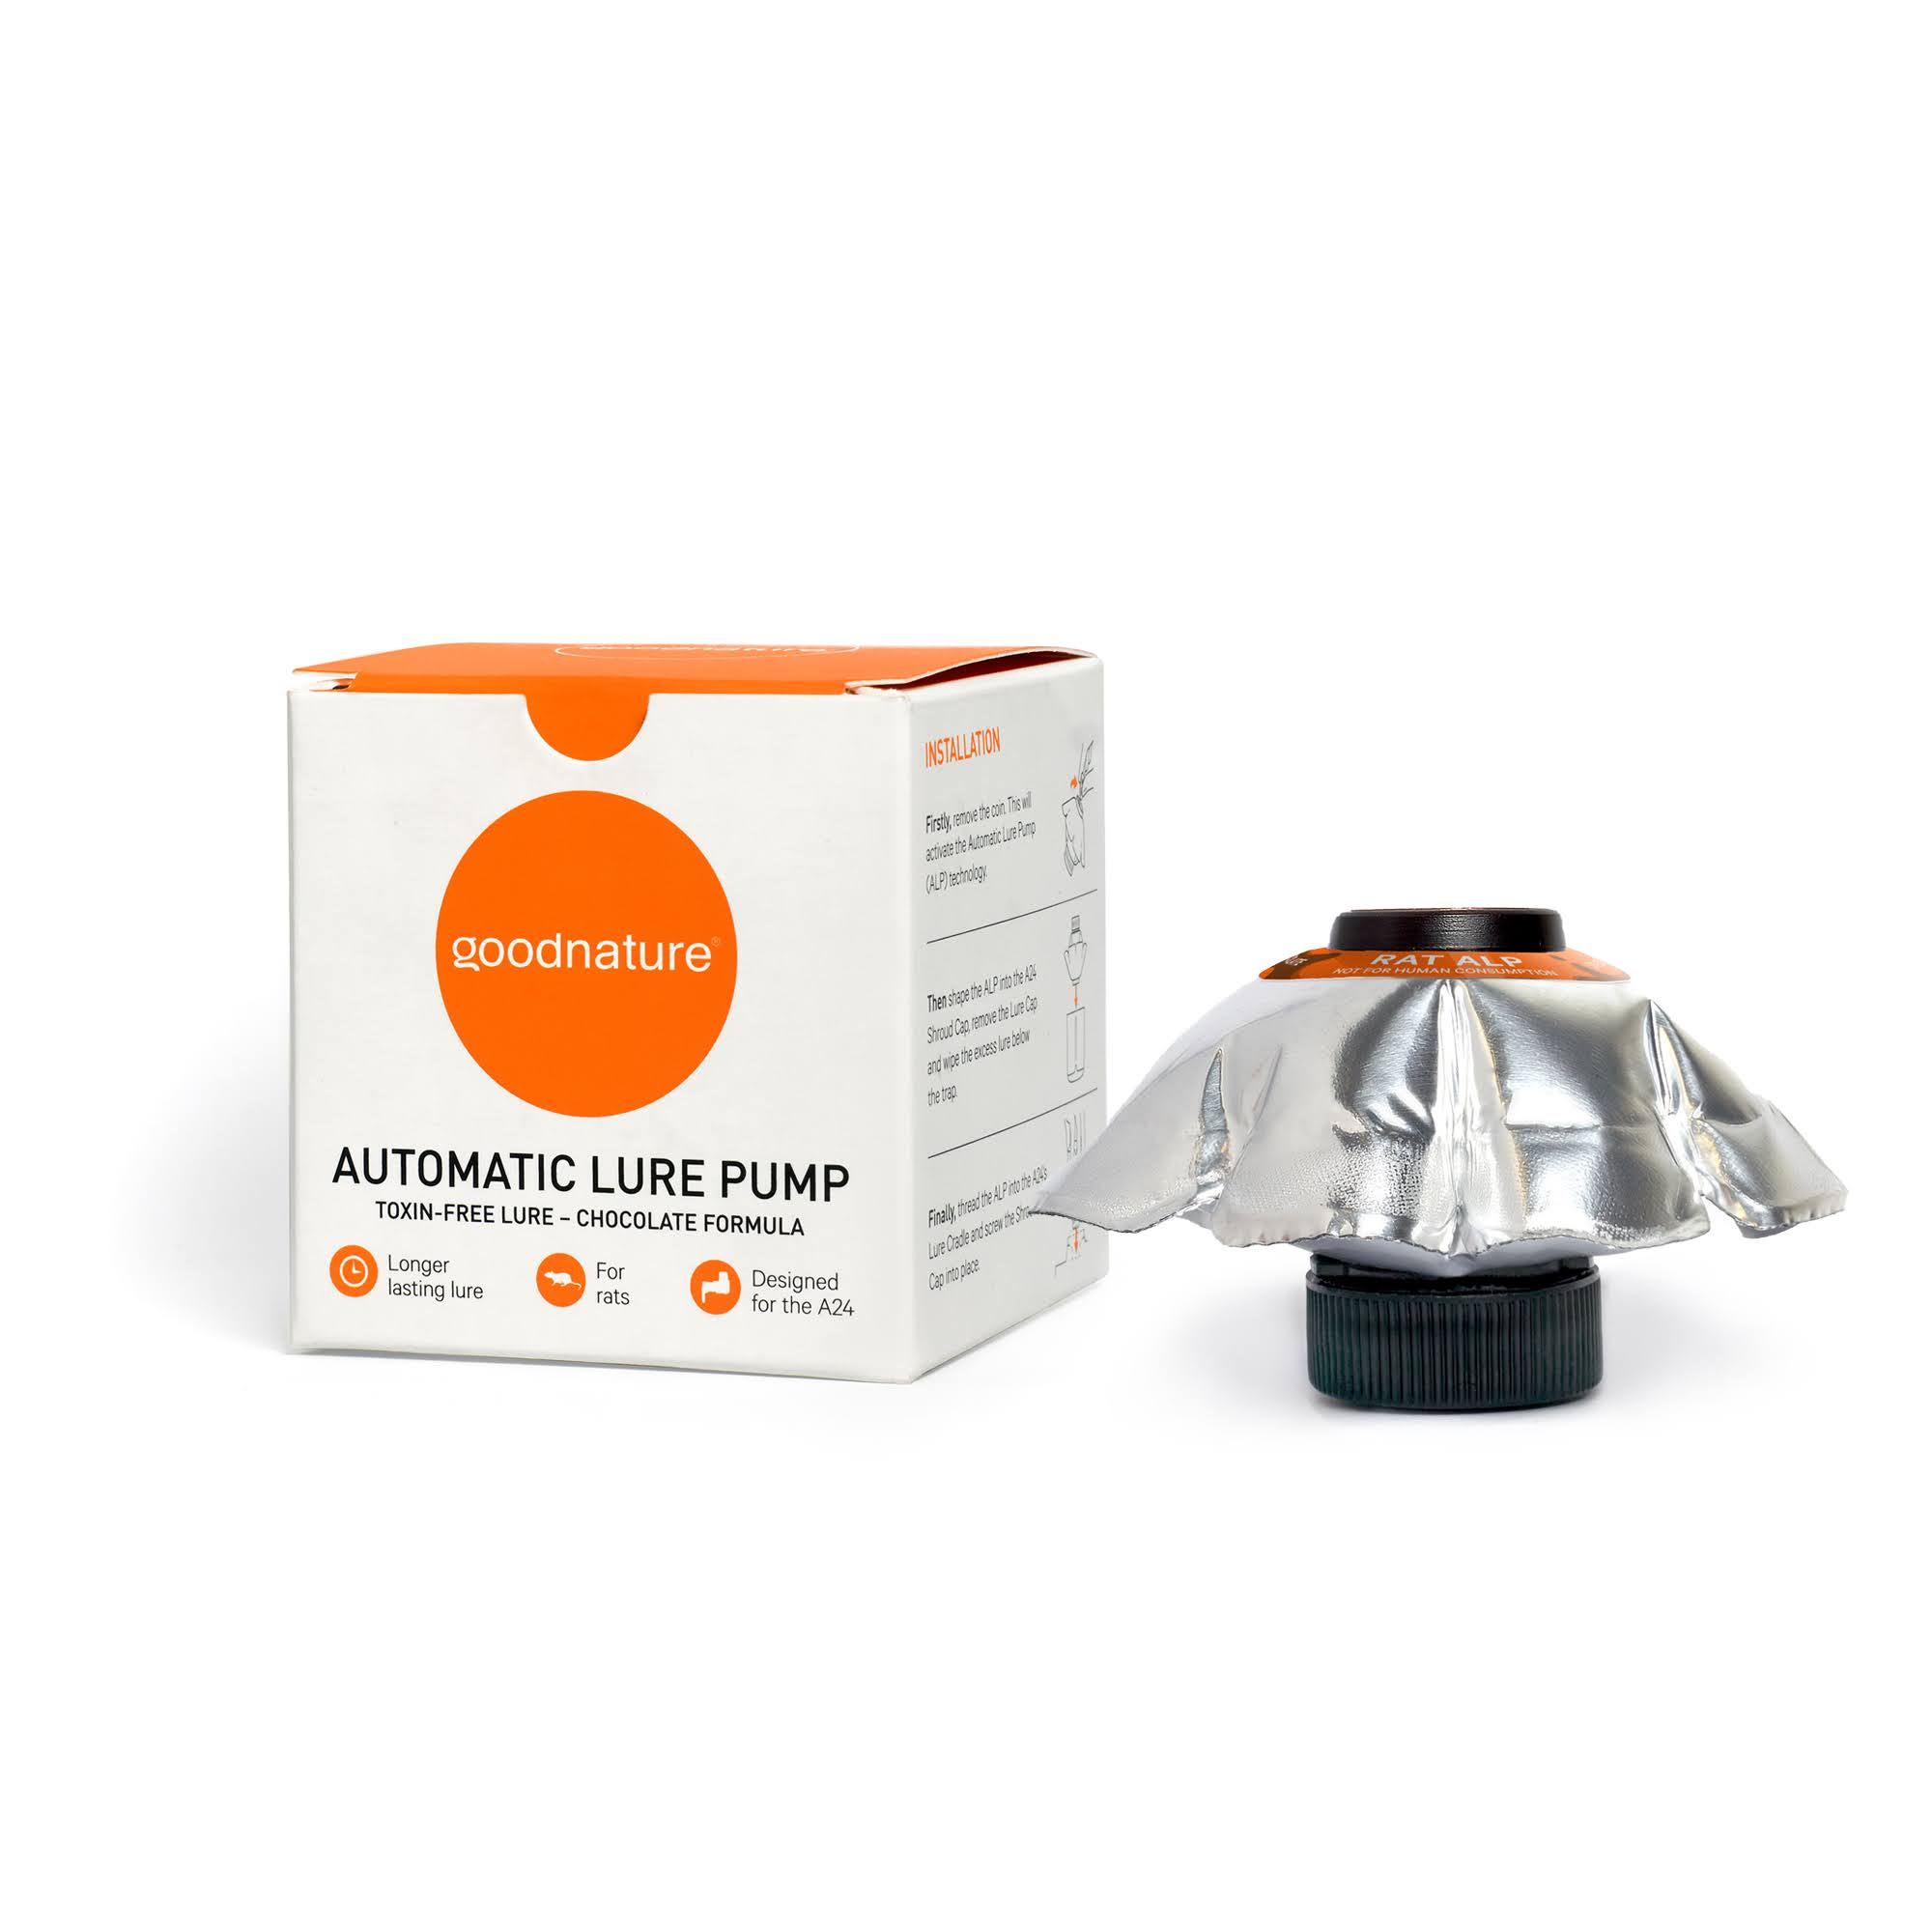 A24 Rat & Stoat Automatic Lure Pump (incl. shipping)